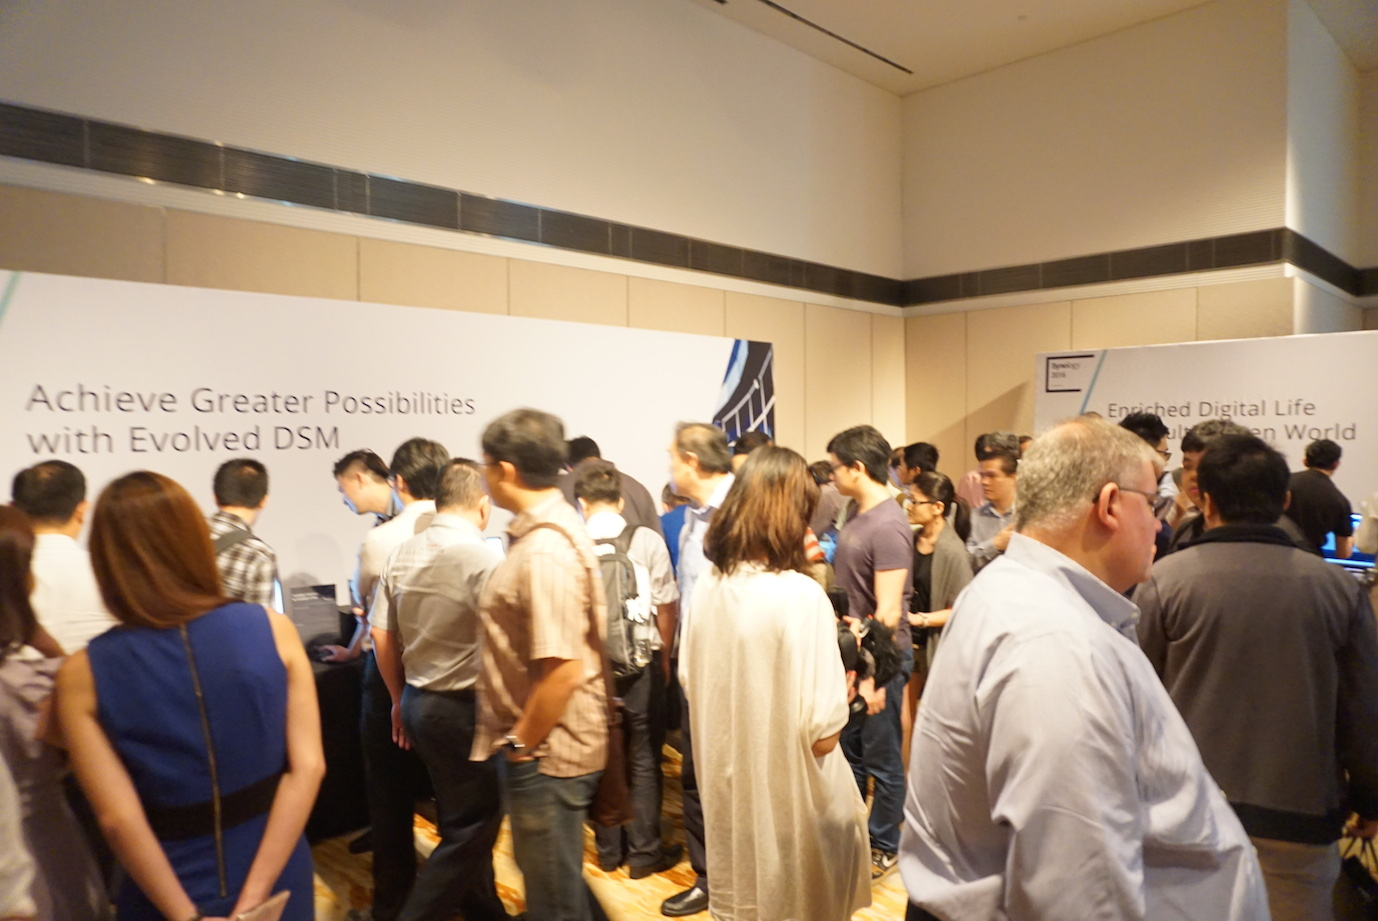 Synology 2016 annual conference in Singapore on September 16